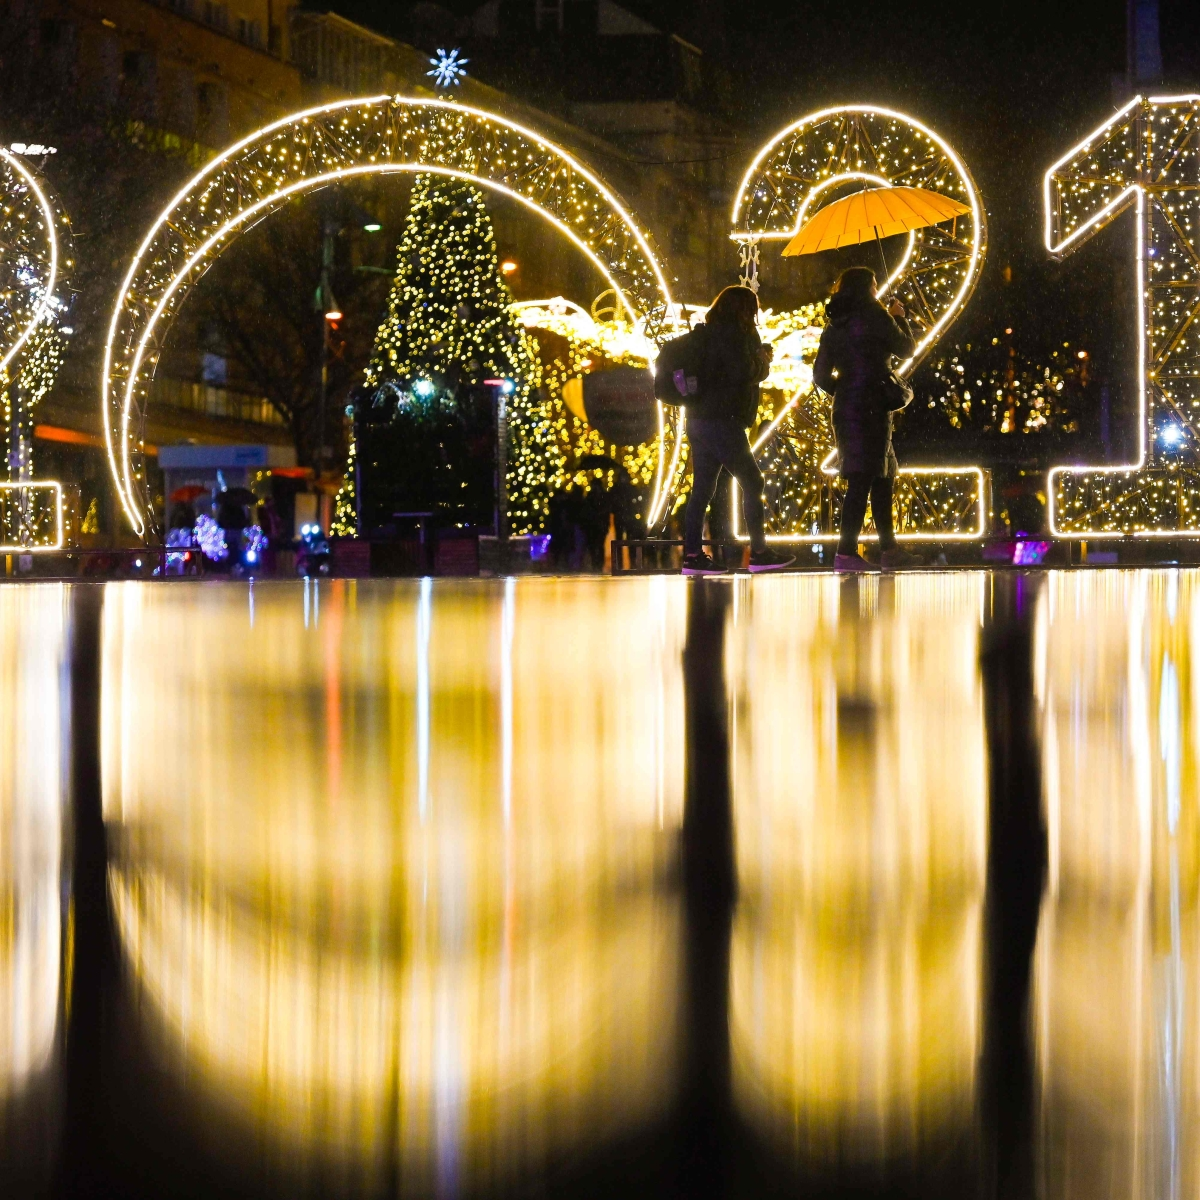 New Year 2021: Wishes, Greetings, SMS, Quotes to send on WhatsApp, Facebook, and Instagram